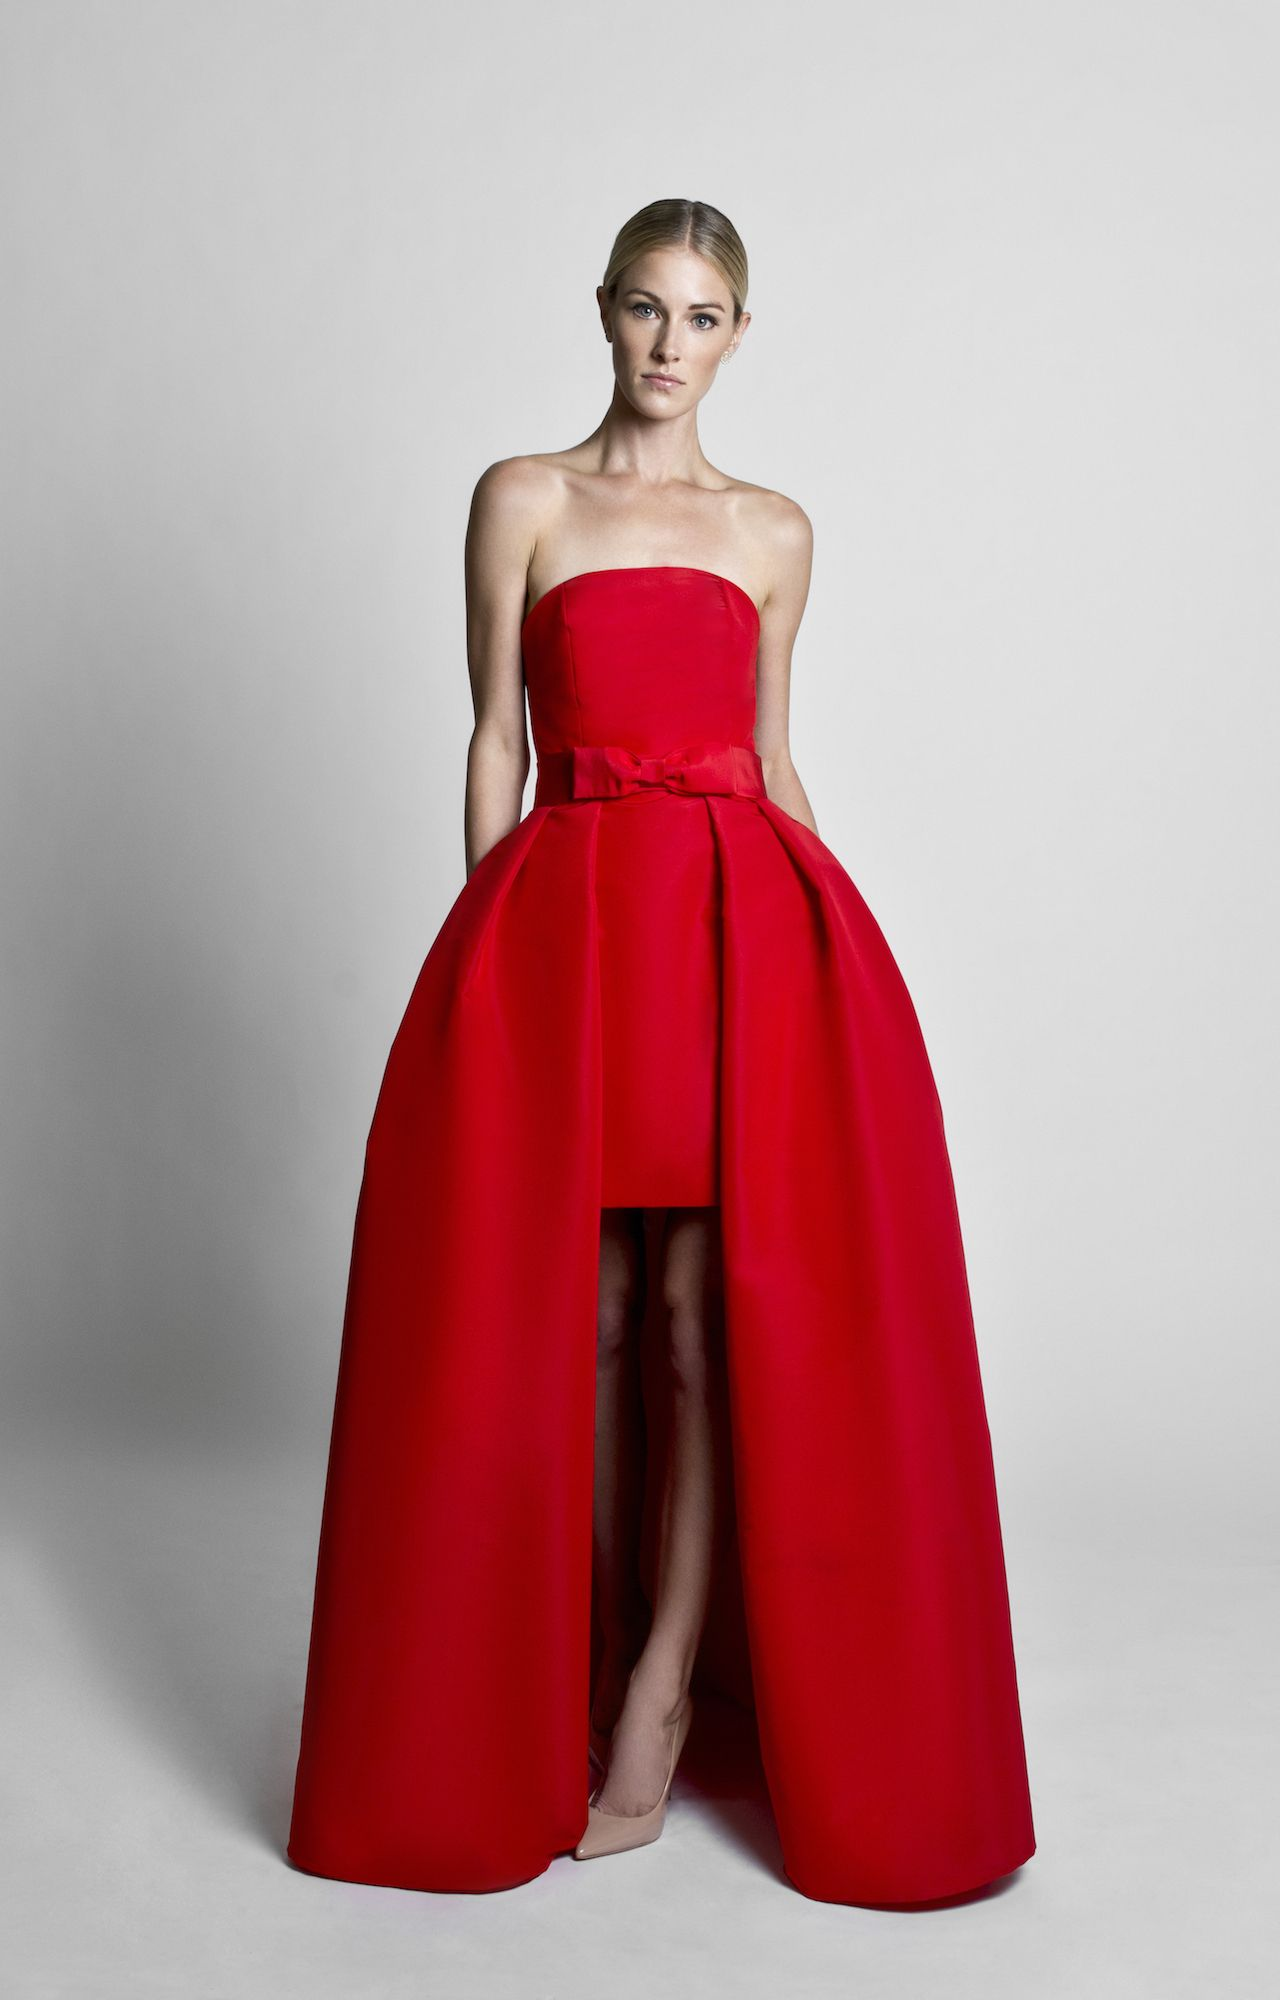 66d7bd5bc109 Silk Faille Strapless Mini Dress with Bow Convertible Skirt | Red O ...